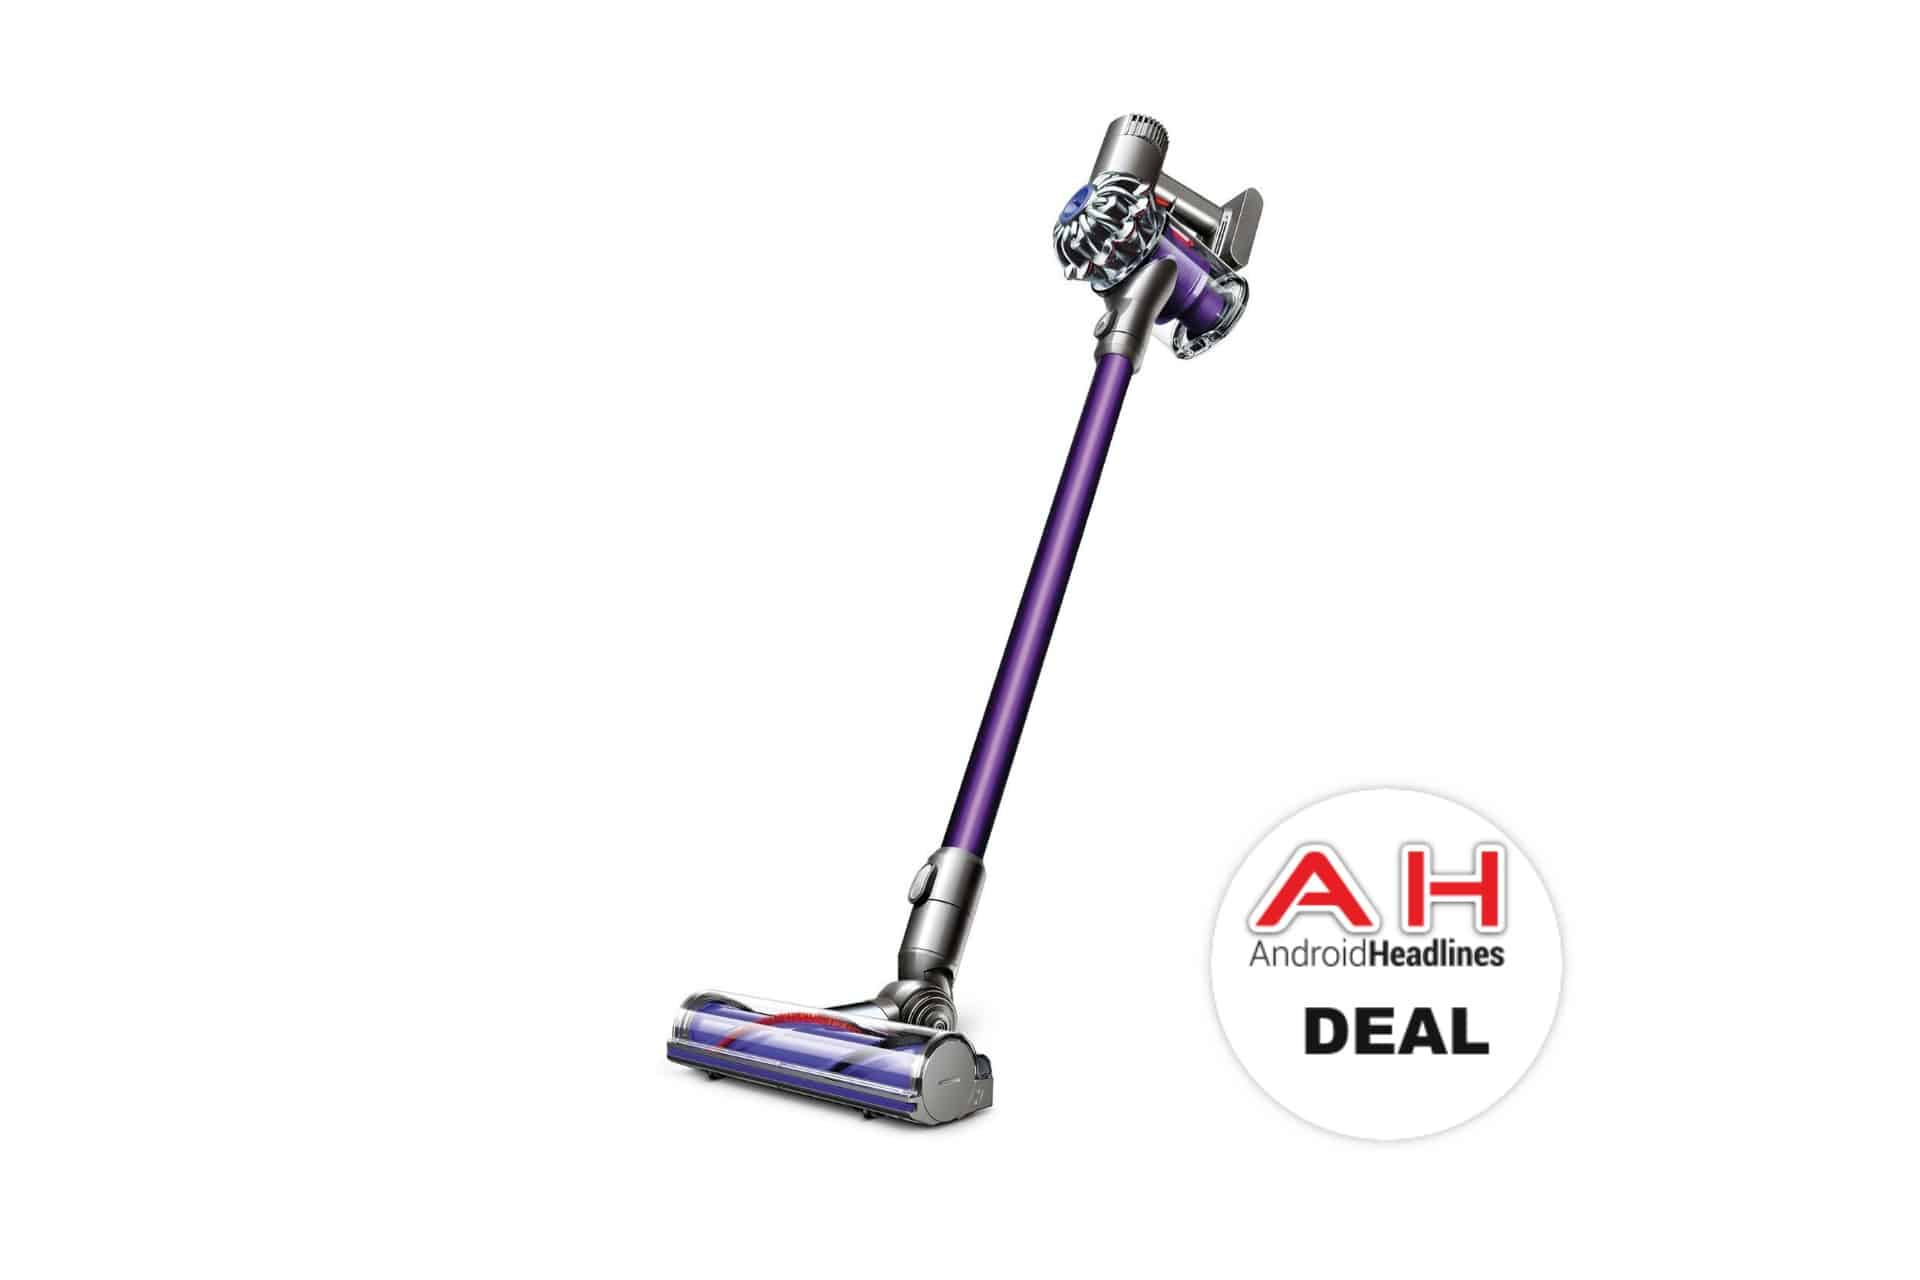 Image of: Handstick Deal Dyson V6 Animal Cordless Vacuum For 199 Today Only Gadgets Fsetyt Com Deal Dyson V6 Animal Cordless Vacuum For 199 Today Only Gadgets